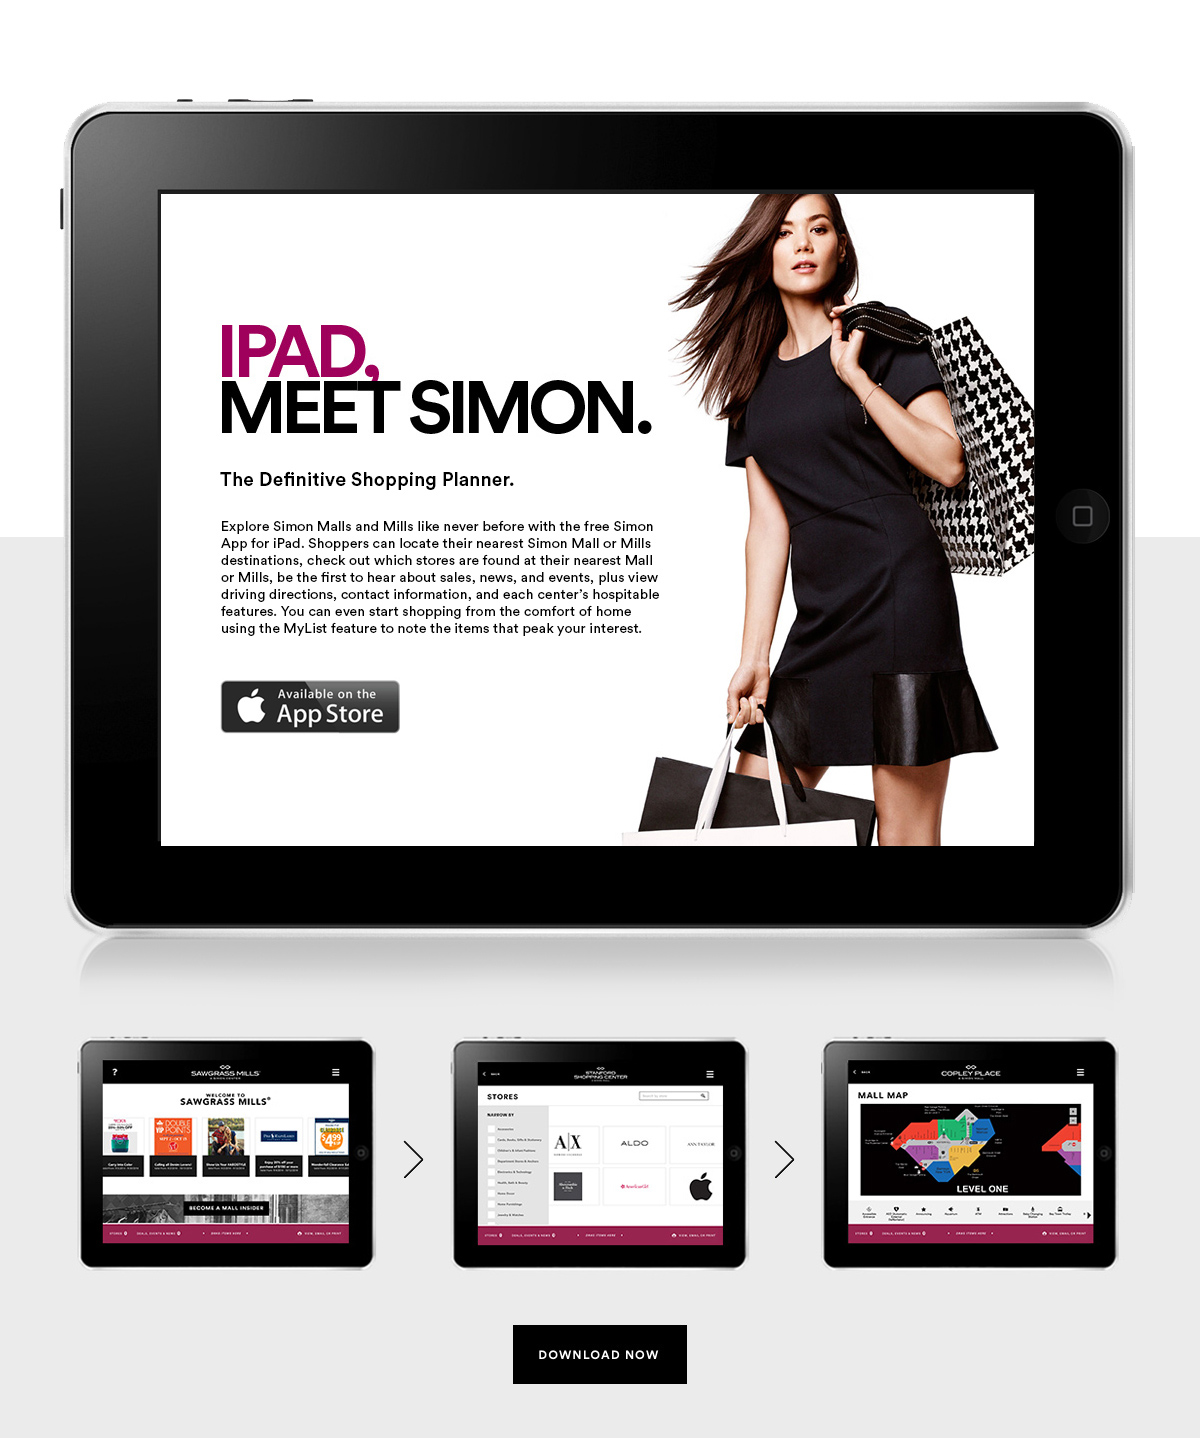 Ipad, Meet Simon. The definitive shopping planner.